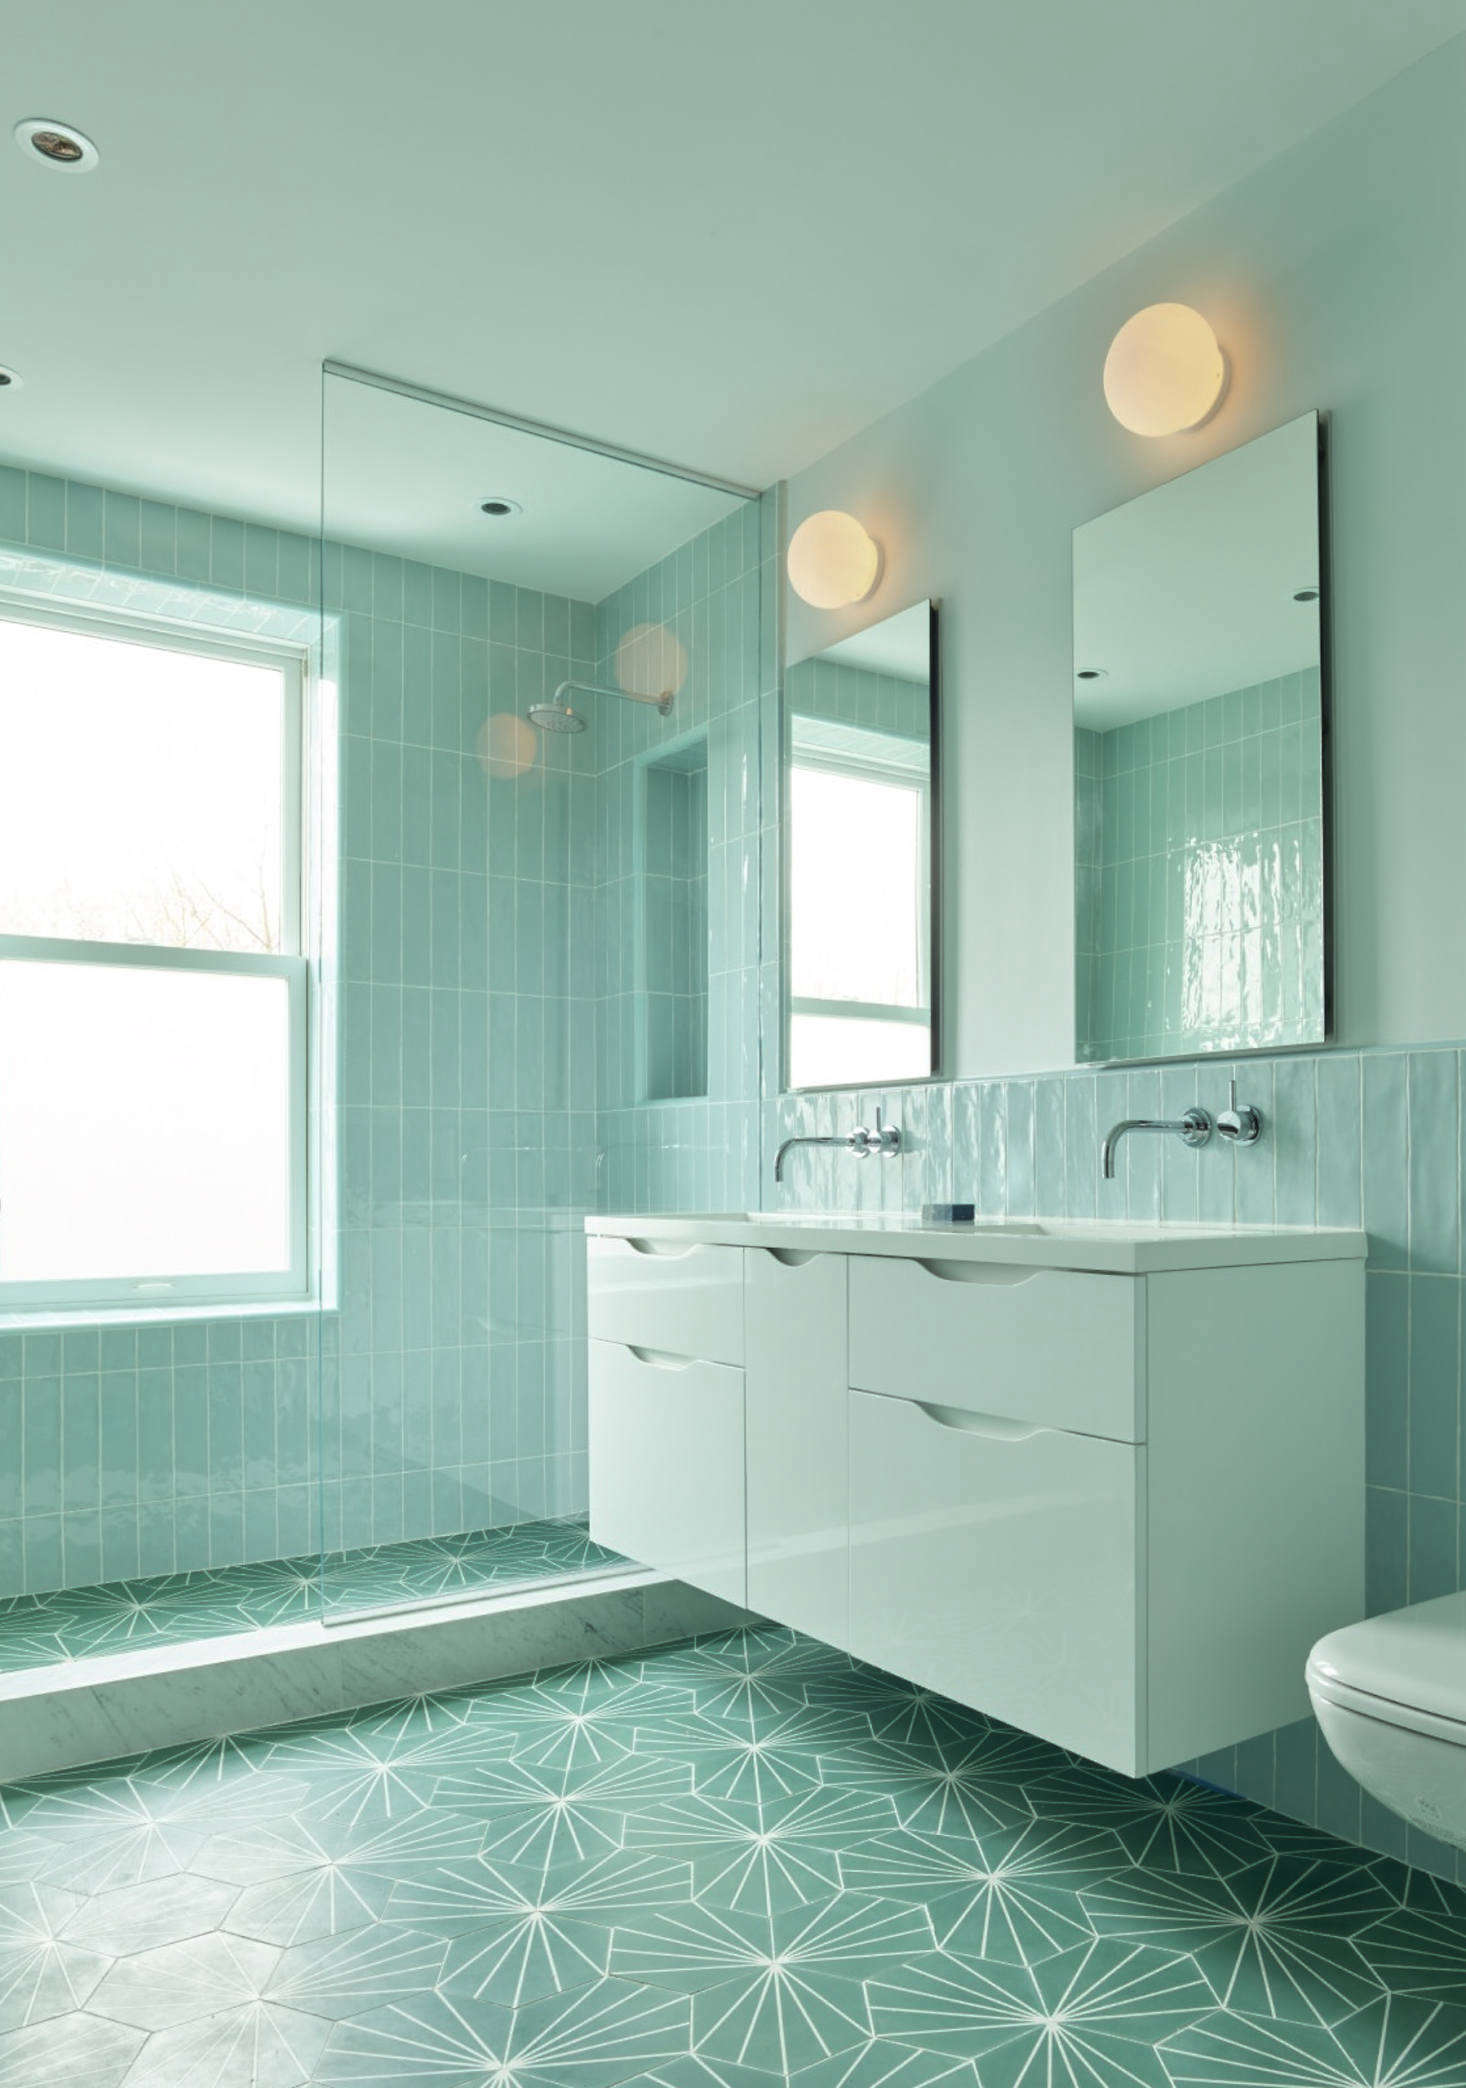 The girls' bath, in tone-on-tone sea-foam green, a collaboration between Spain and Kocher, the architect.